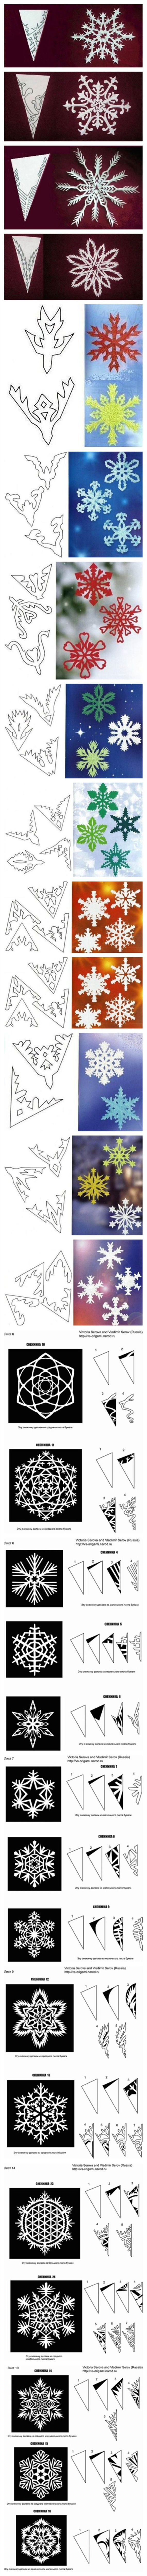 snowflake paper cutout patterns